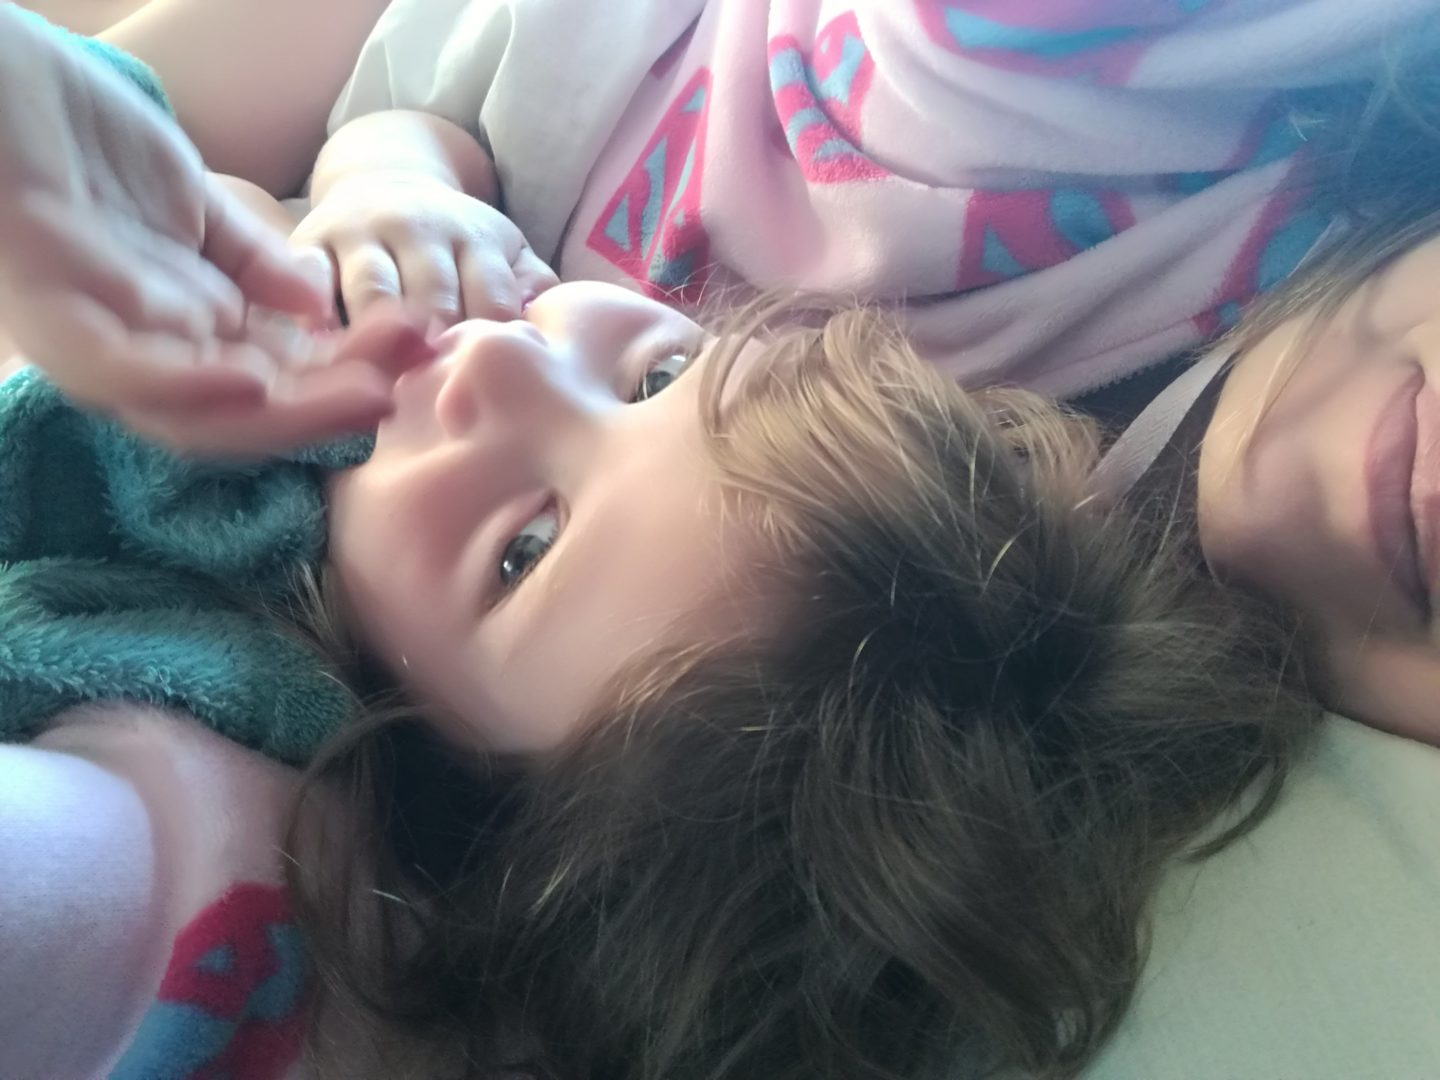 Reasons I Love Our Crazy Bedtime | HarassedMom